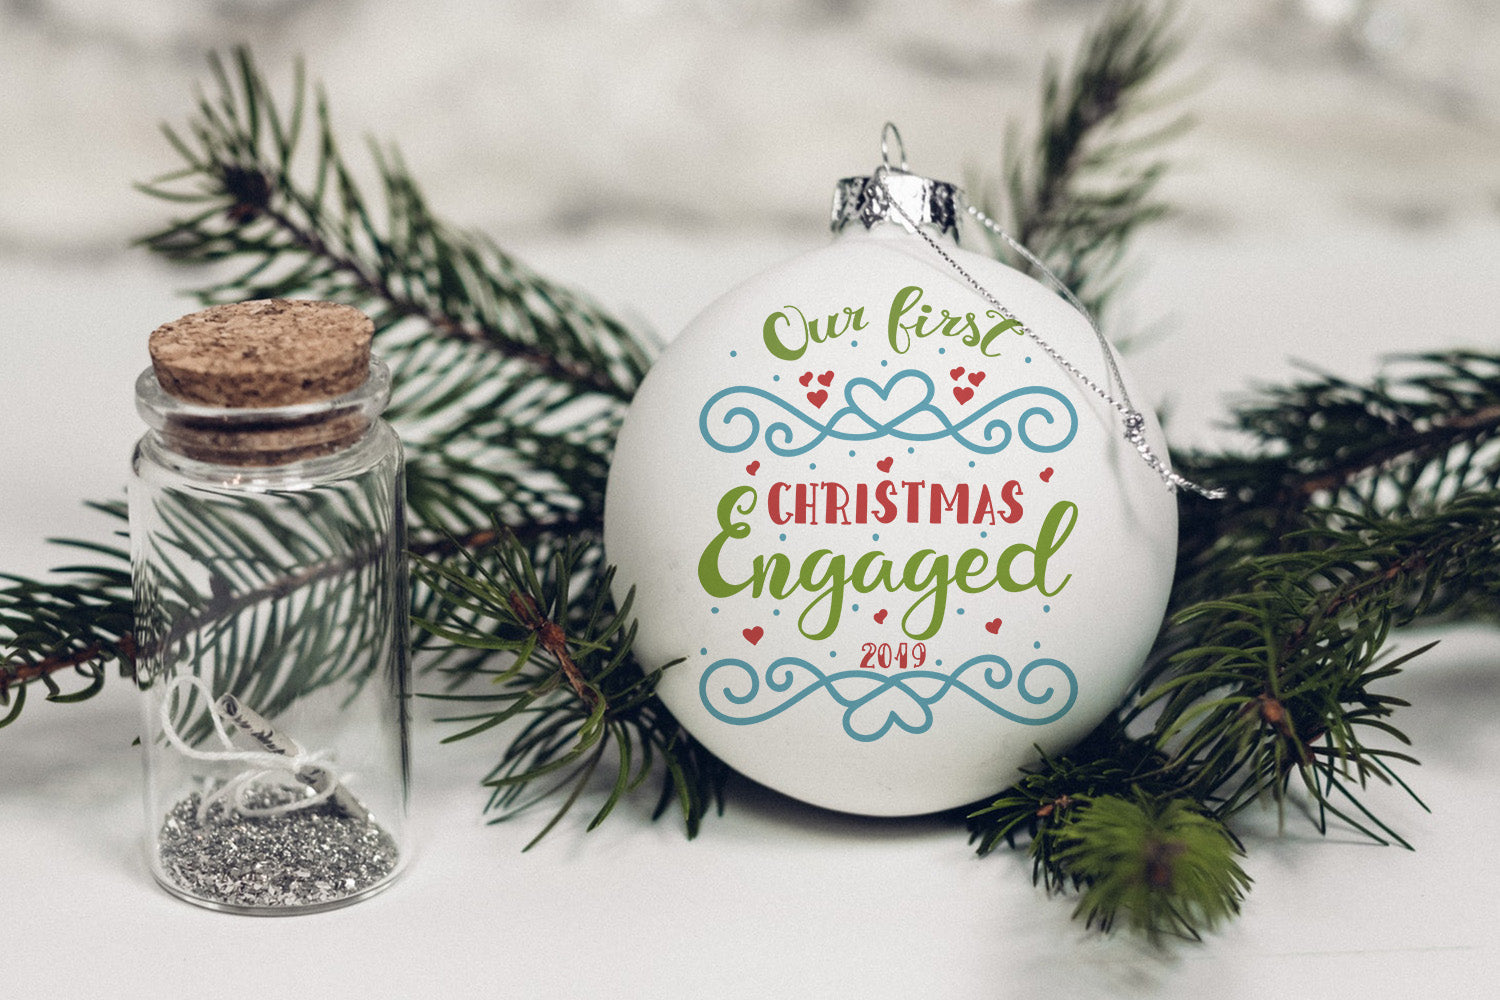 Our first Christmas engaged-by Illustrator Guru